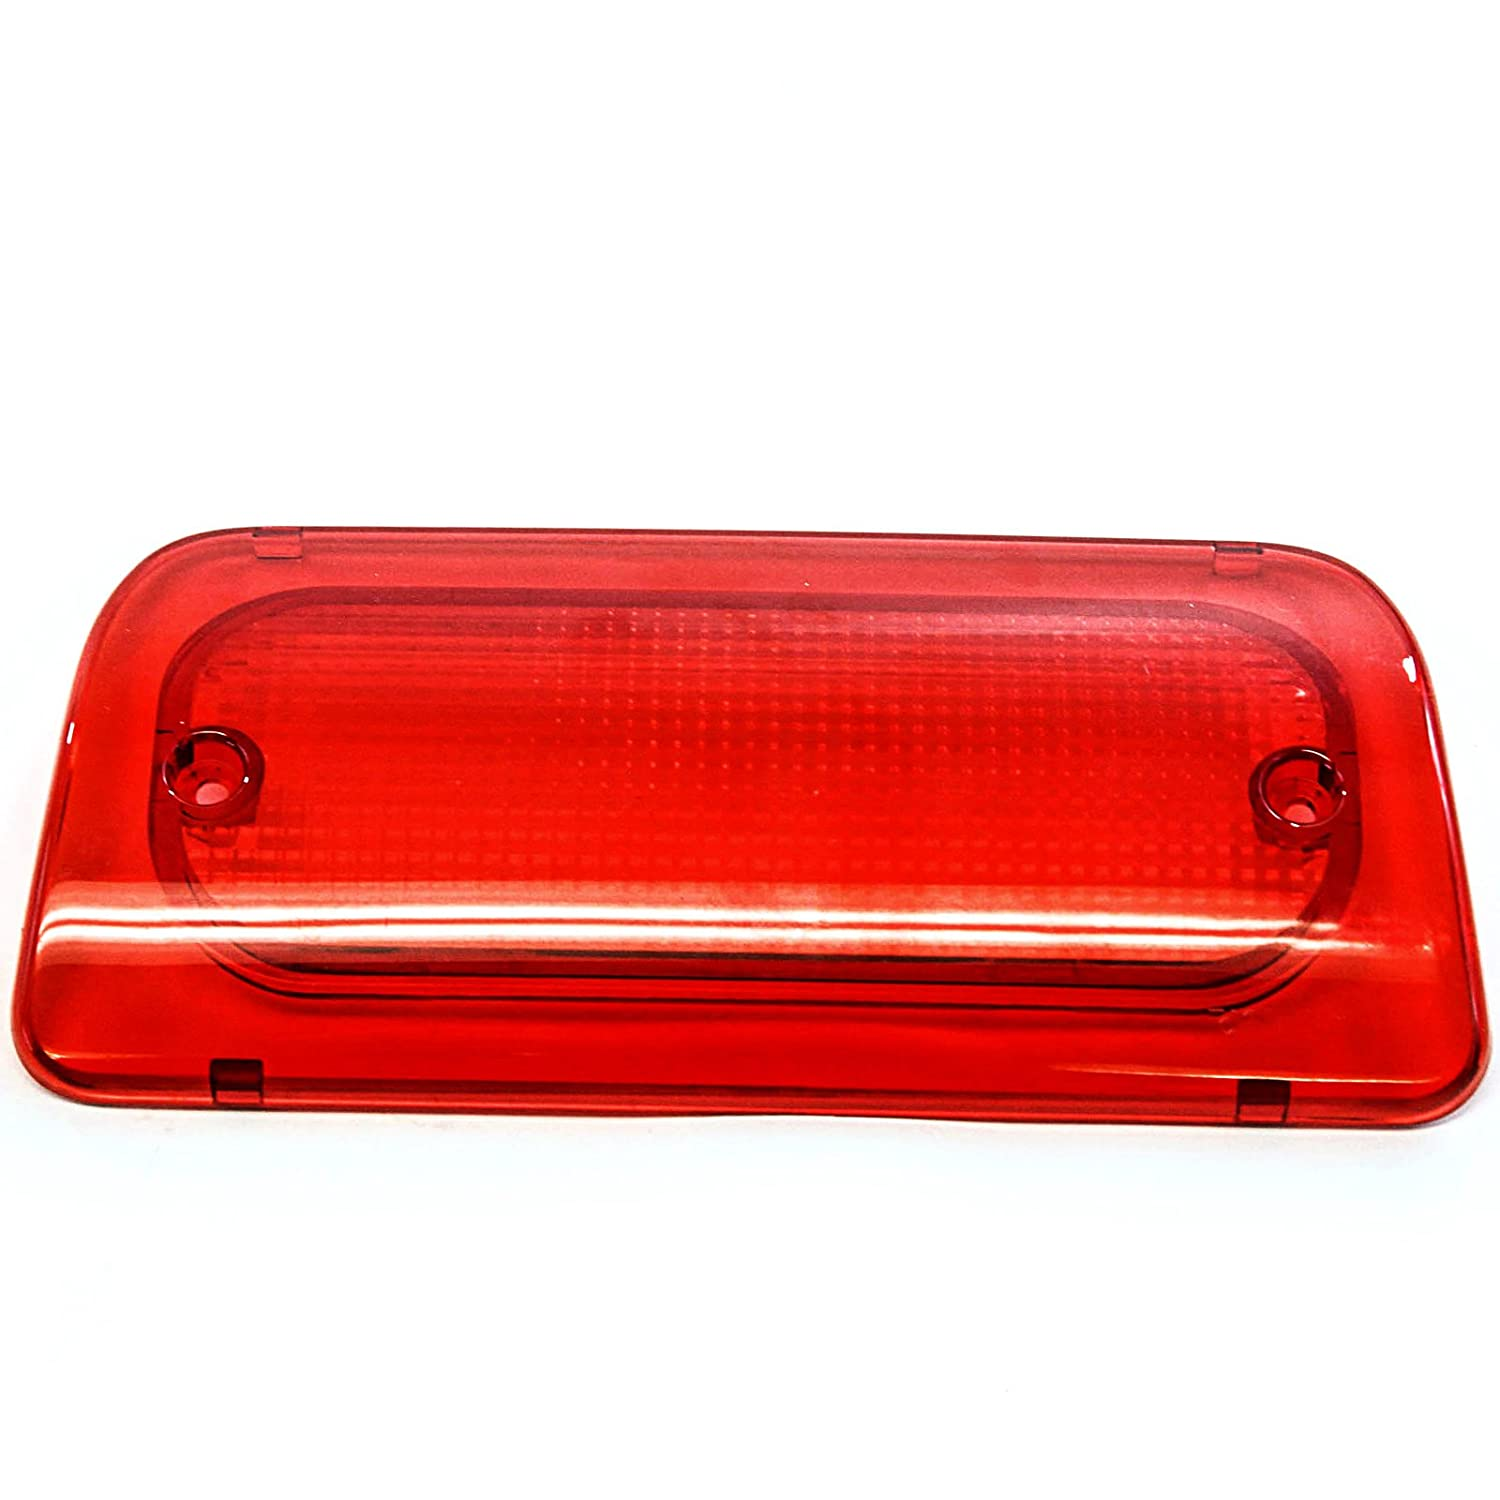 3rd Brake Light Lens 1994 2004 Compatible With Chevy S S10 Tail Wiring Harness Cap 10 Gmc Sonoma Extended Cab Only Genuine Rha High Red Third Automotive